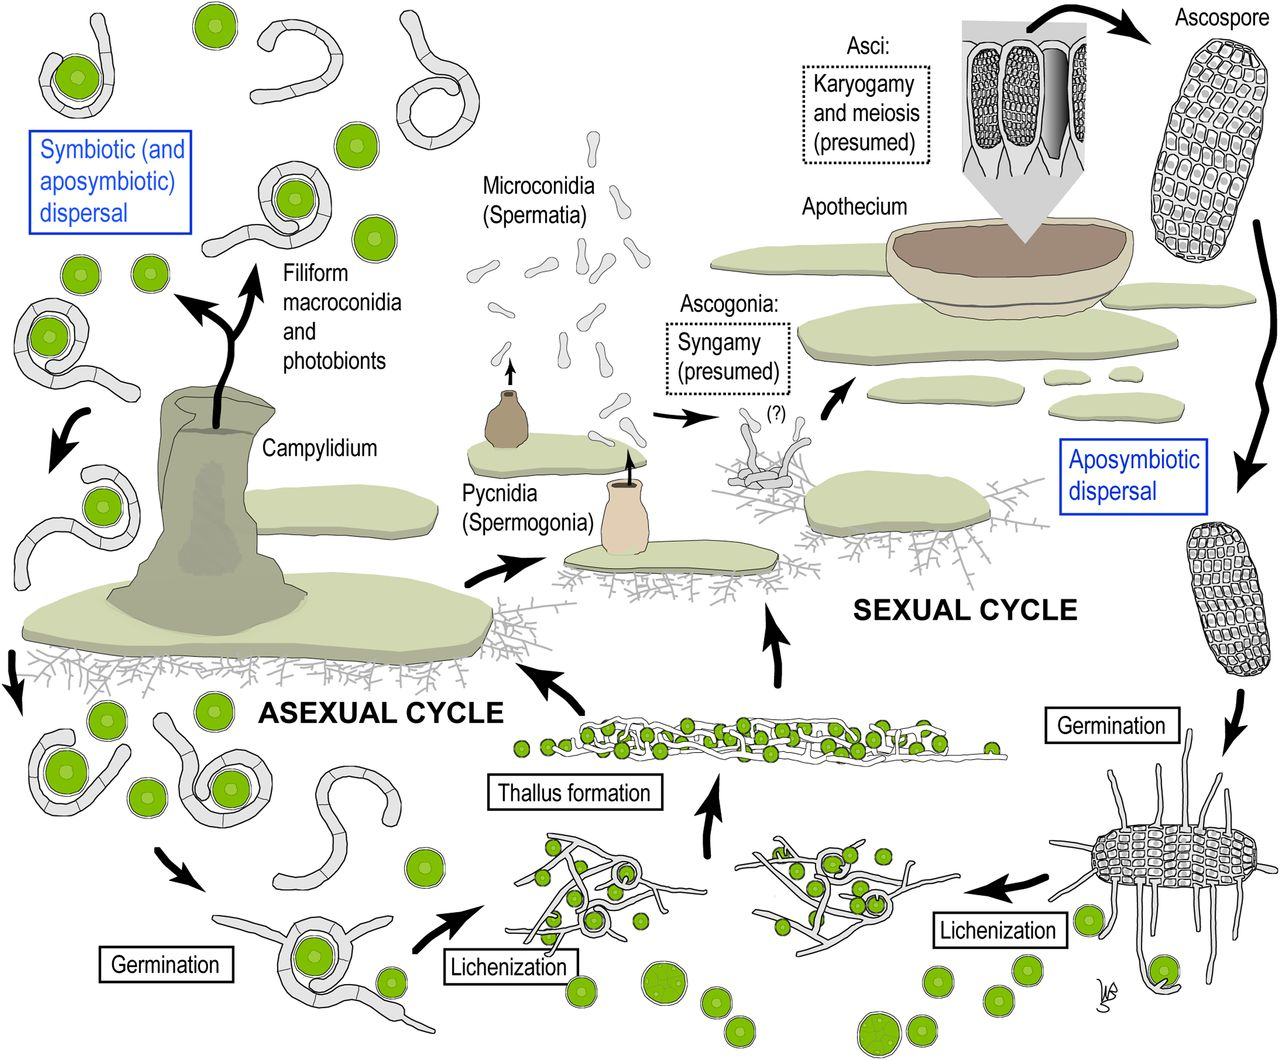 Complete life cycle of the lichen fungus Calopadia puiggarii.